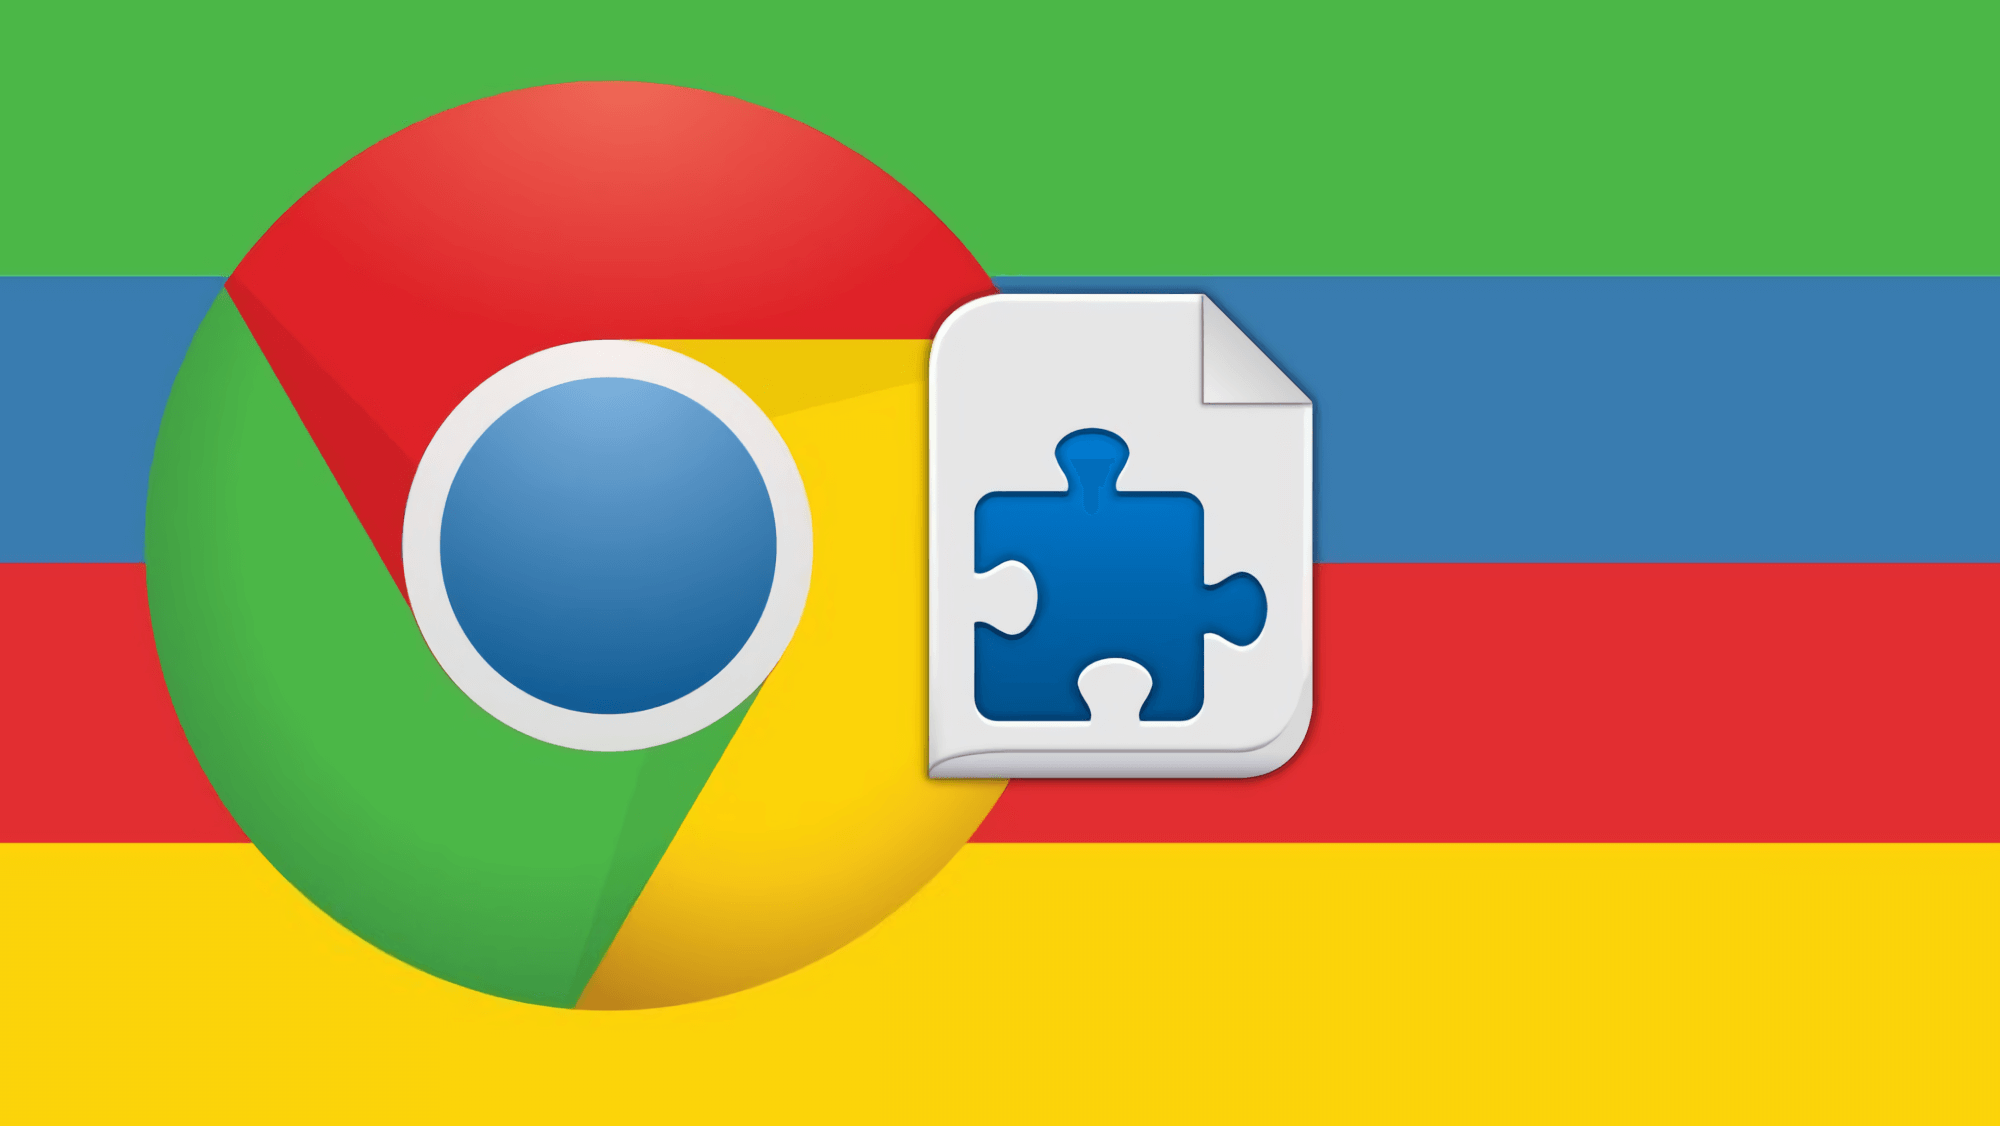 Most Google Chrome extensions have fewer than 1,000 installs - TechSpot